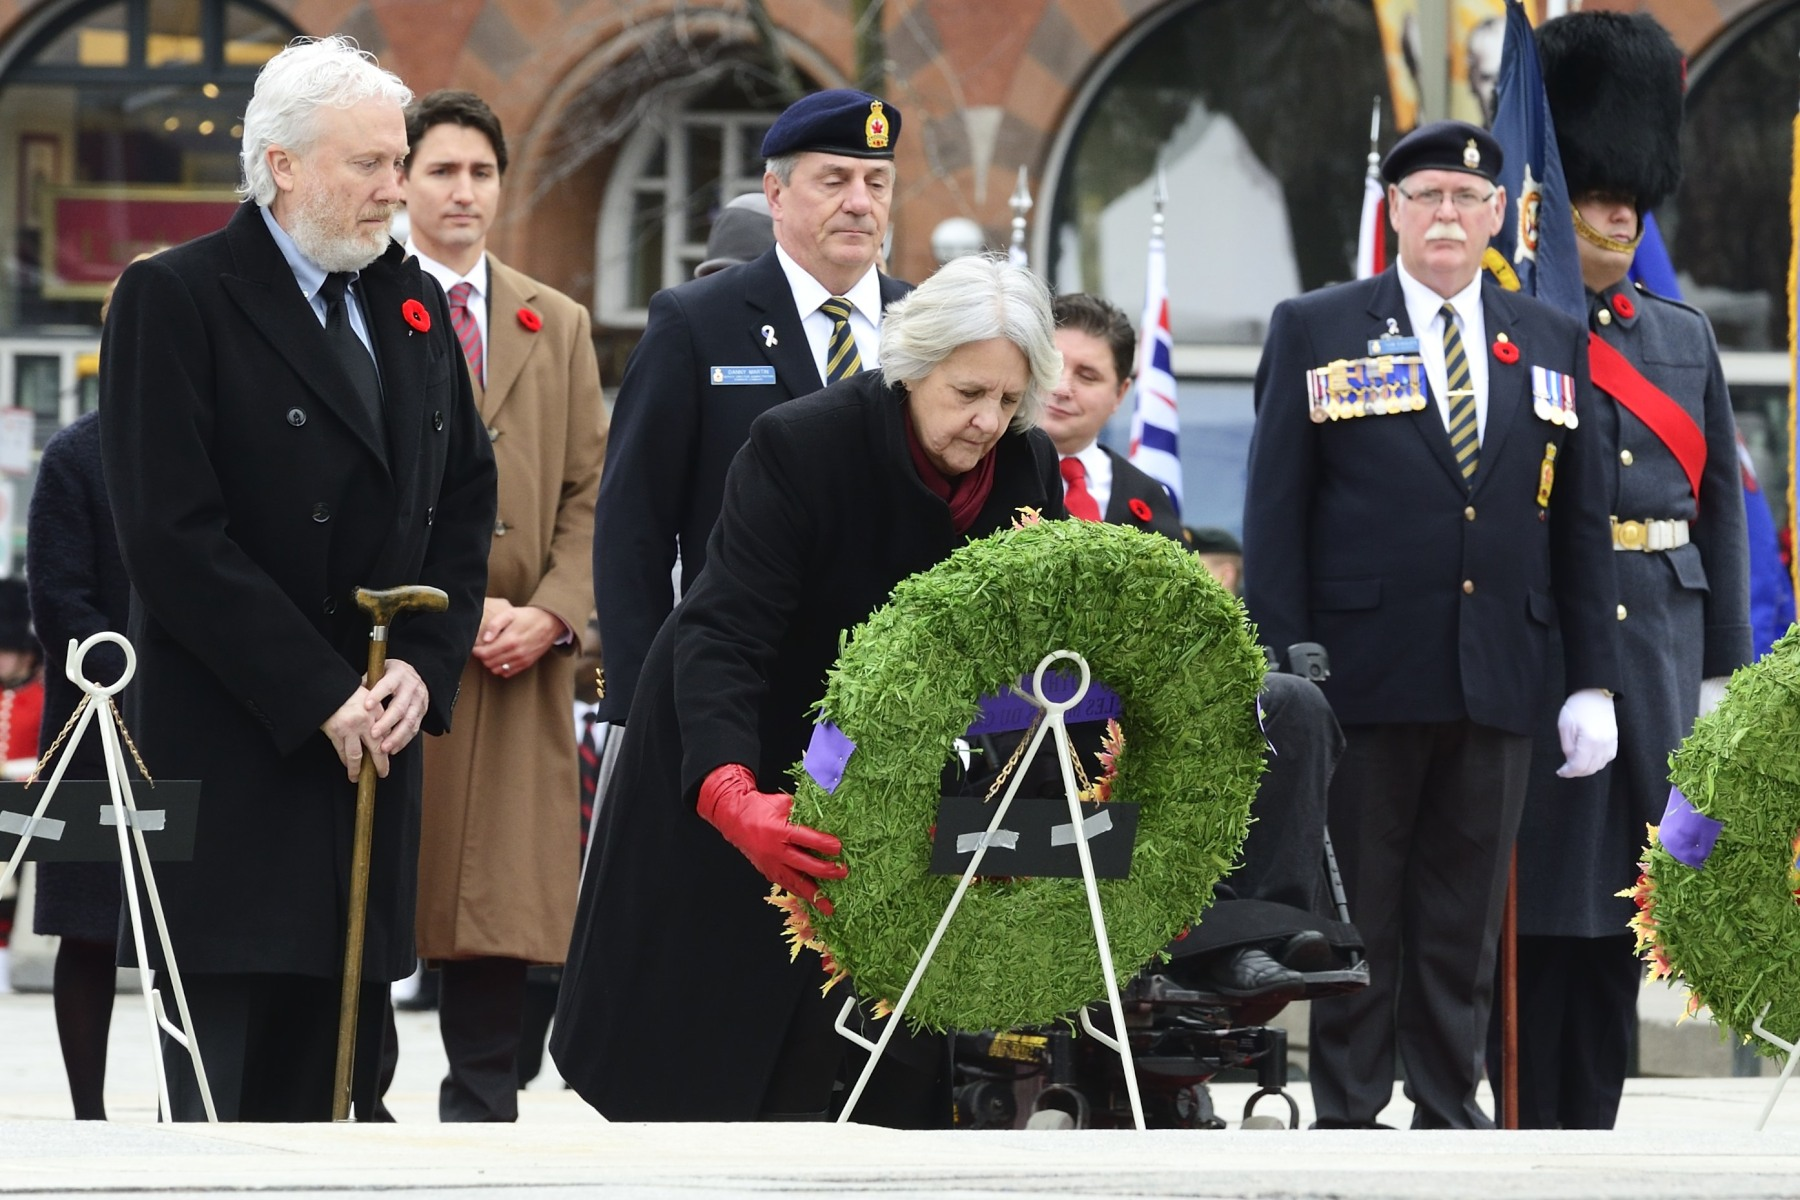 2015 National Silver Cross Mother Mrs. Sheila Elizabeth Anderson laid a wreath on behalf of all Canadian mothers who have lost a son or a daughter at war.